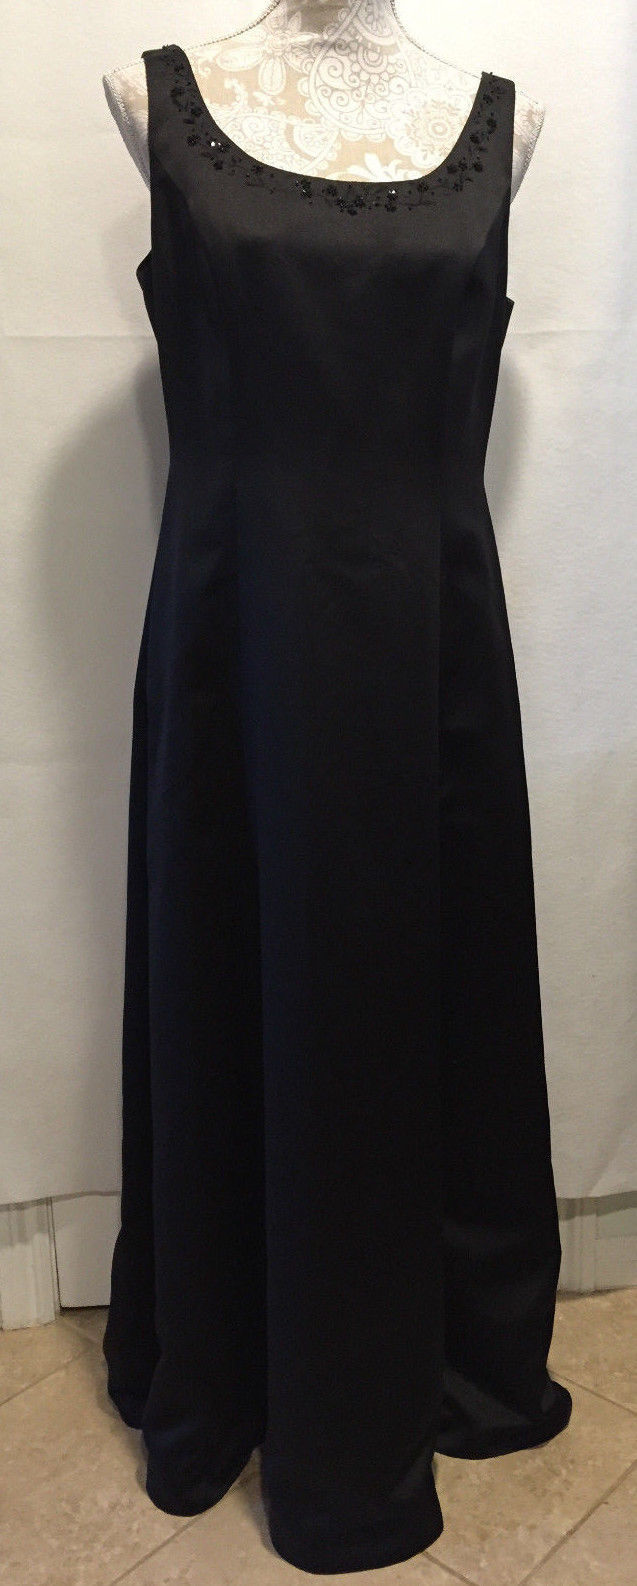 Primary image for David's Bridal Women Holiday Party Formal Beaded Neck Long Black Dress Size 12